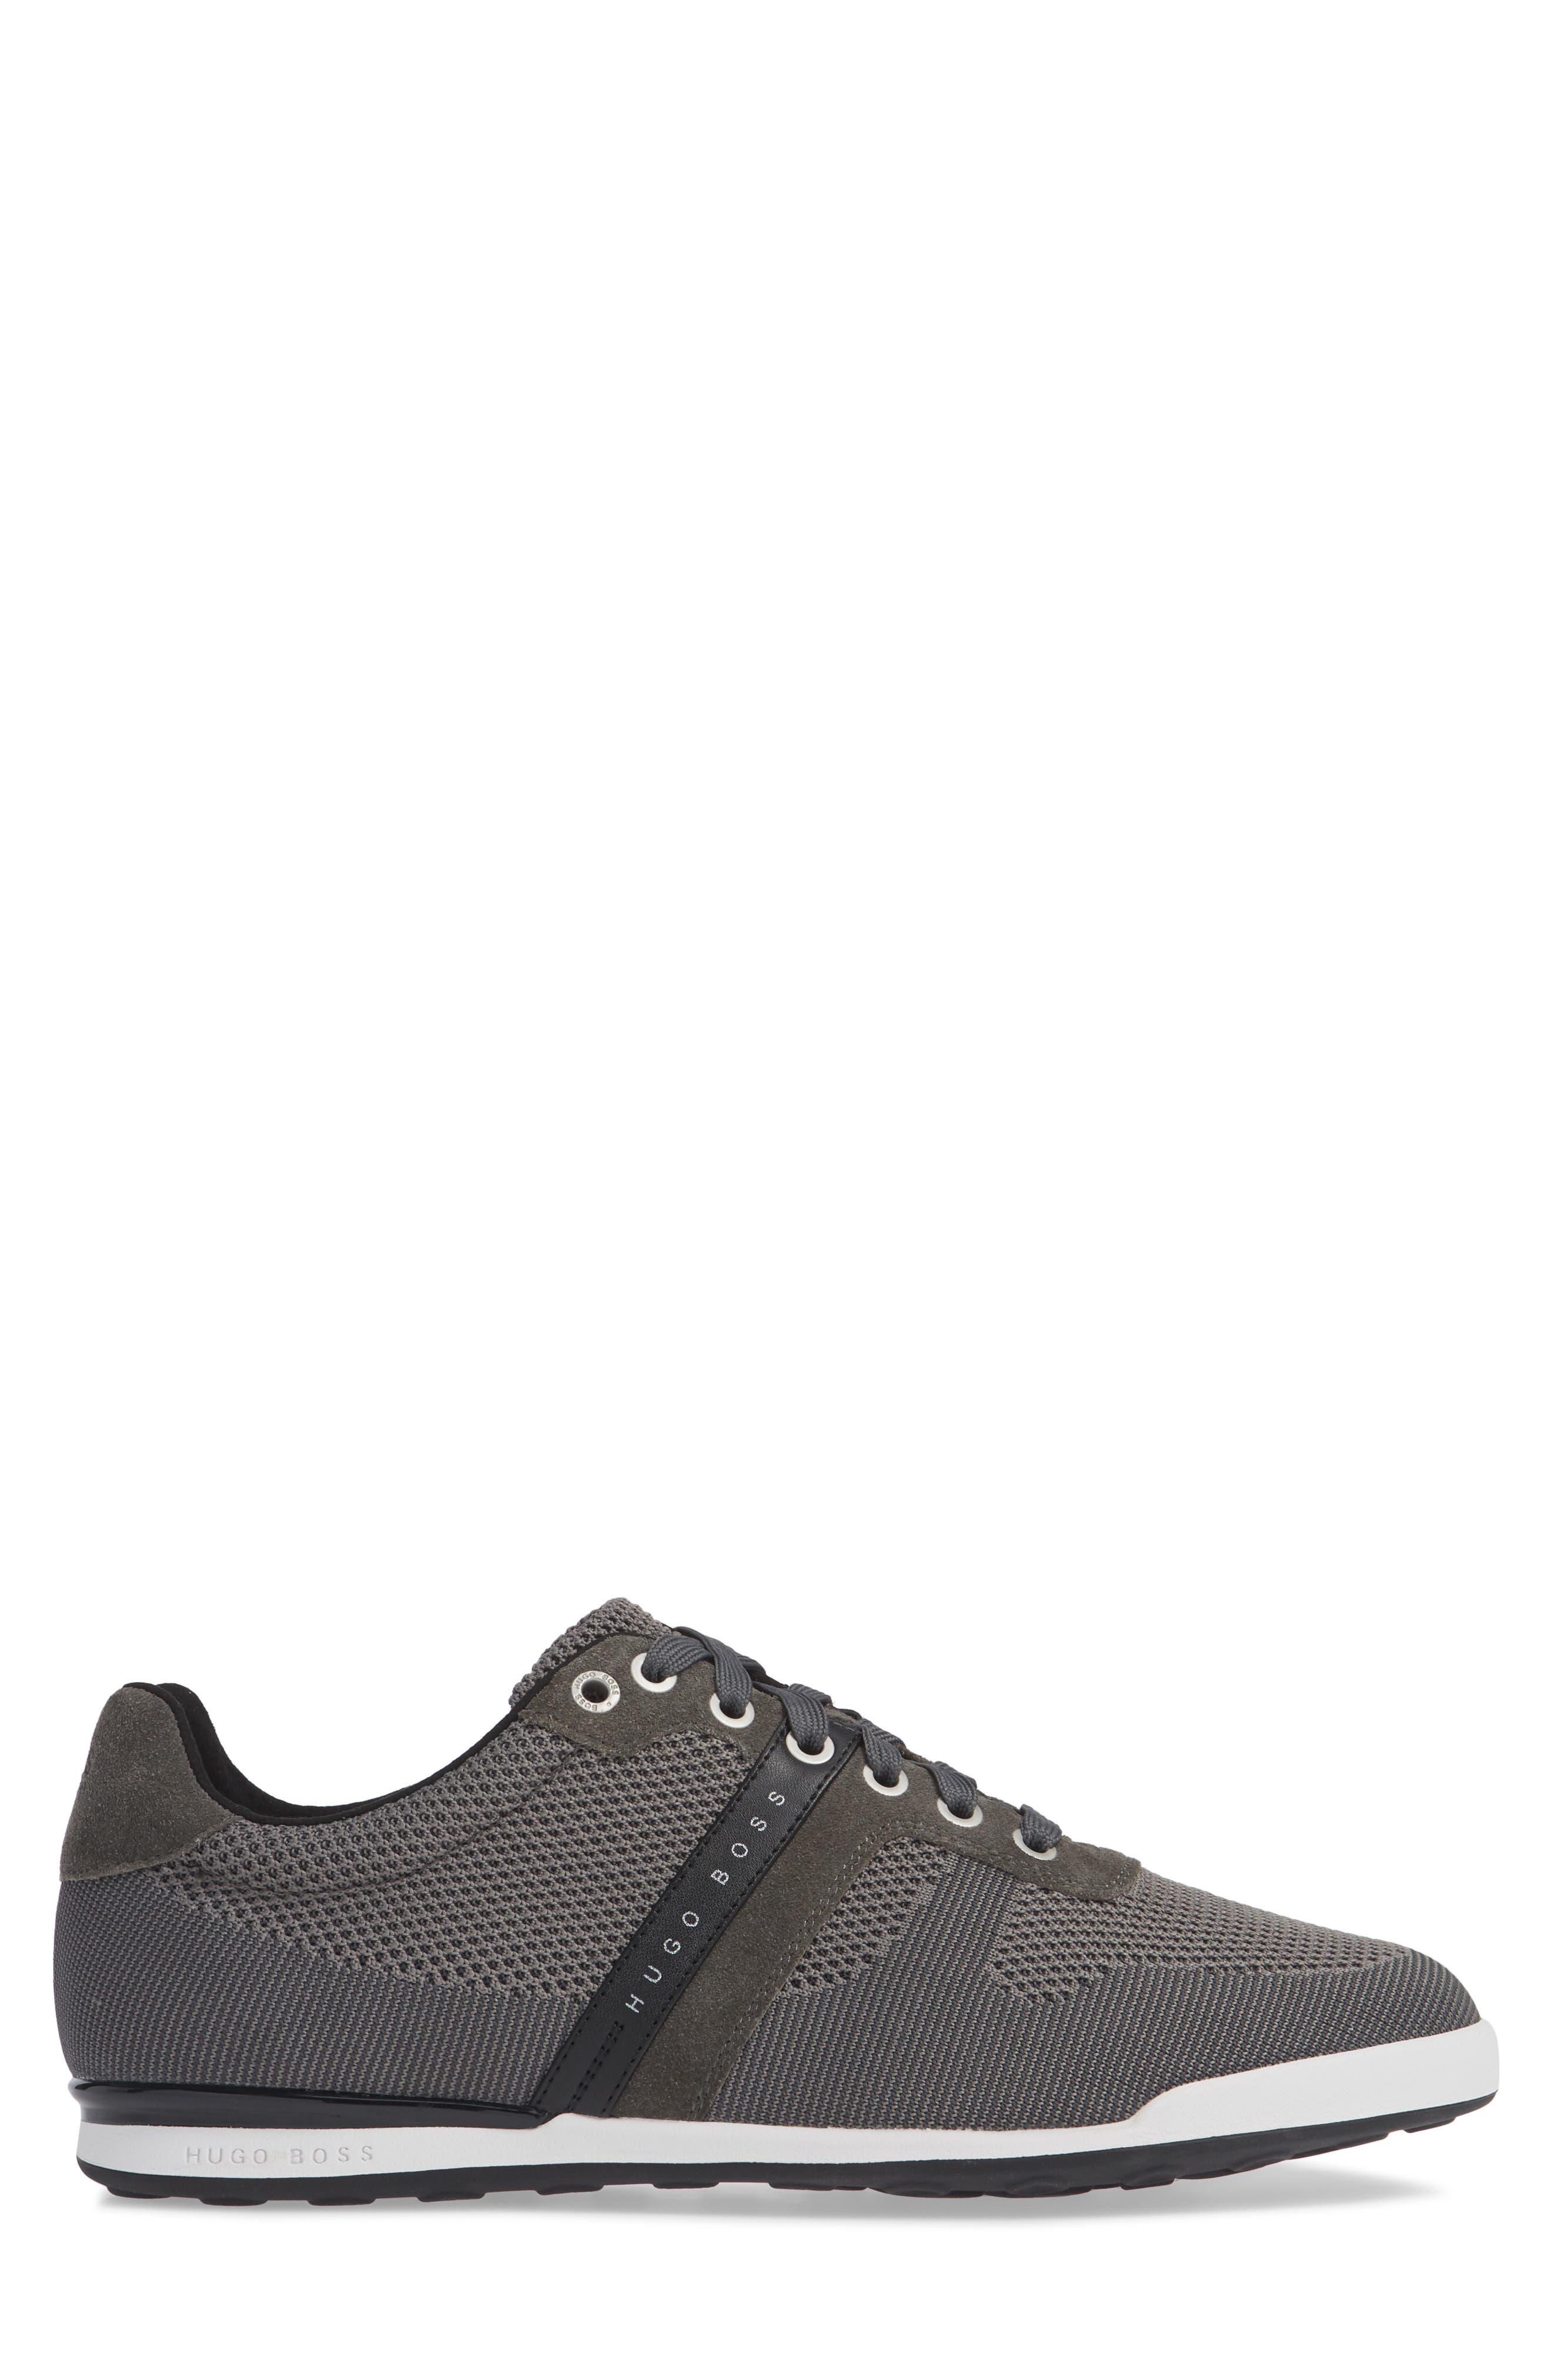 Hugo Boss Arkansas Lace-Up Sneaker,                             Alternate thumbnail 3, color,                             021